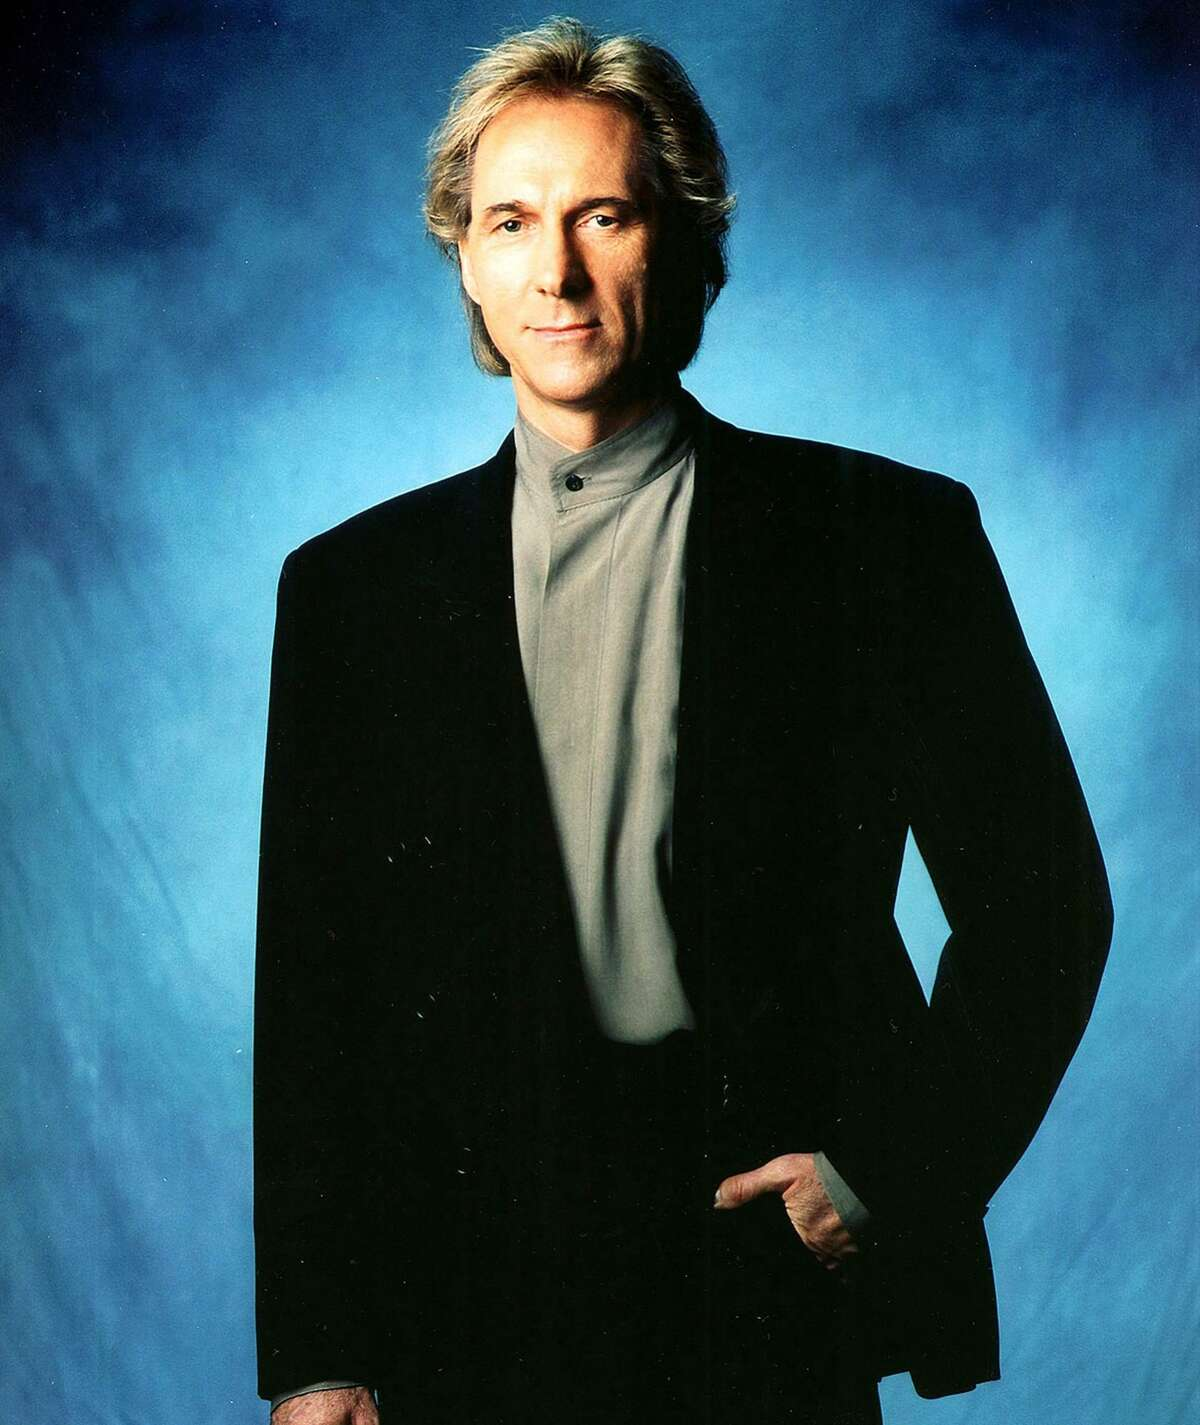 Gary Puckett will bring his Union Gap to the free Hamden Concert series on July 28